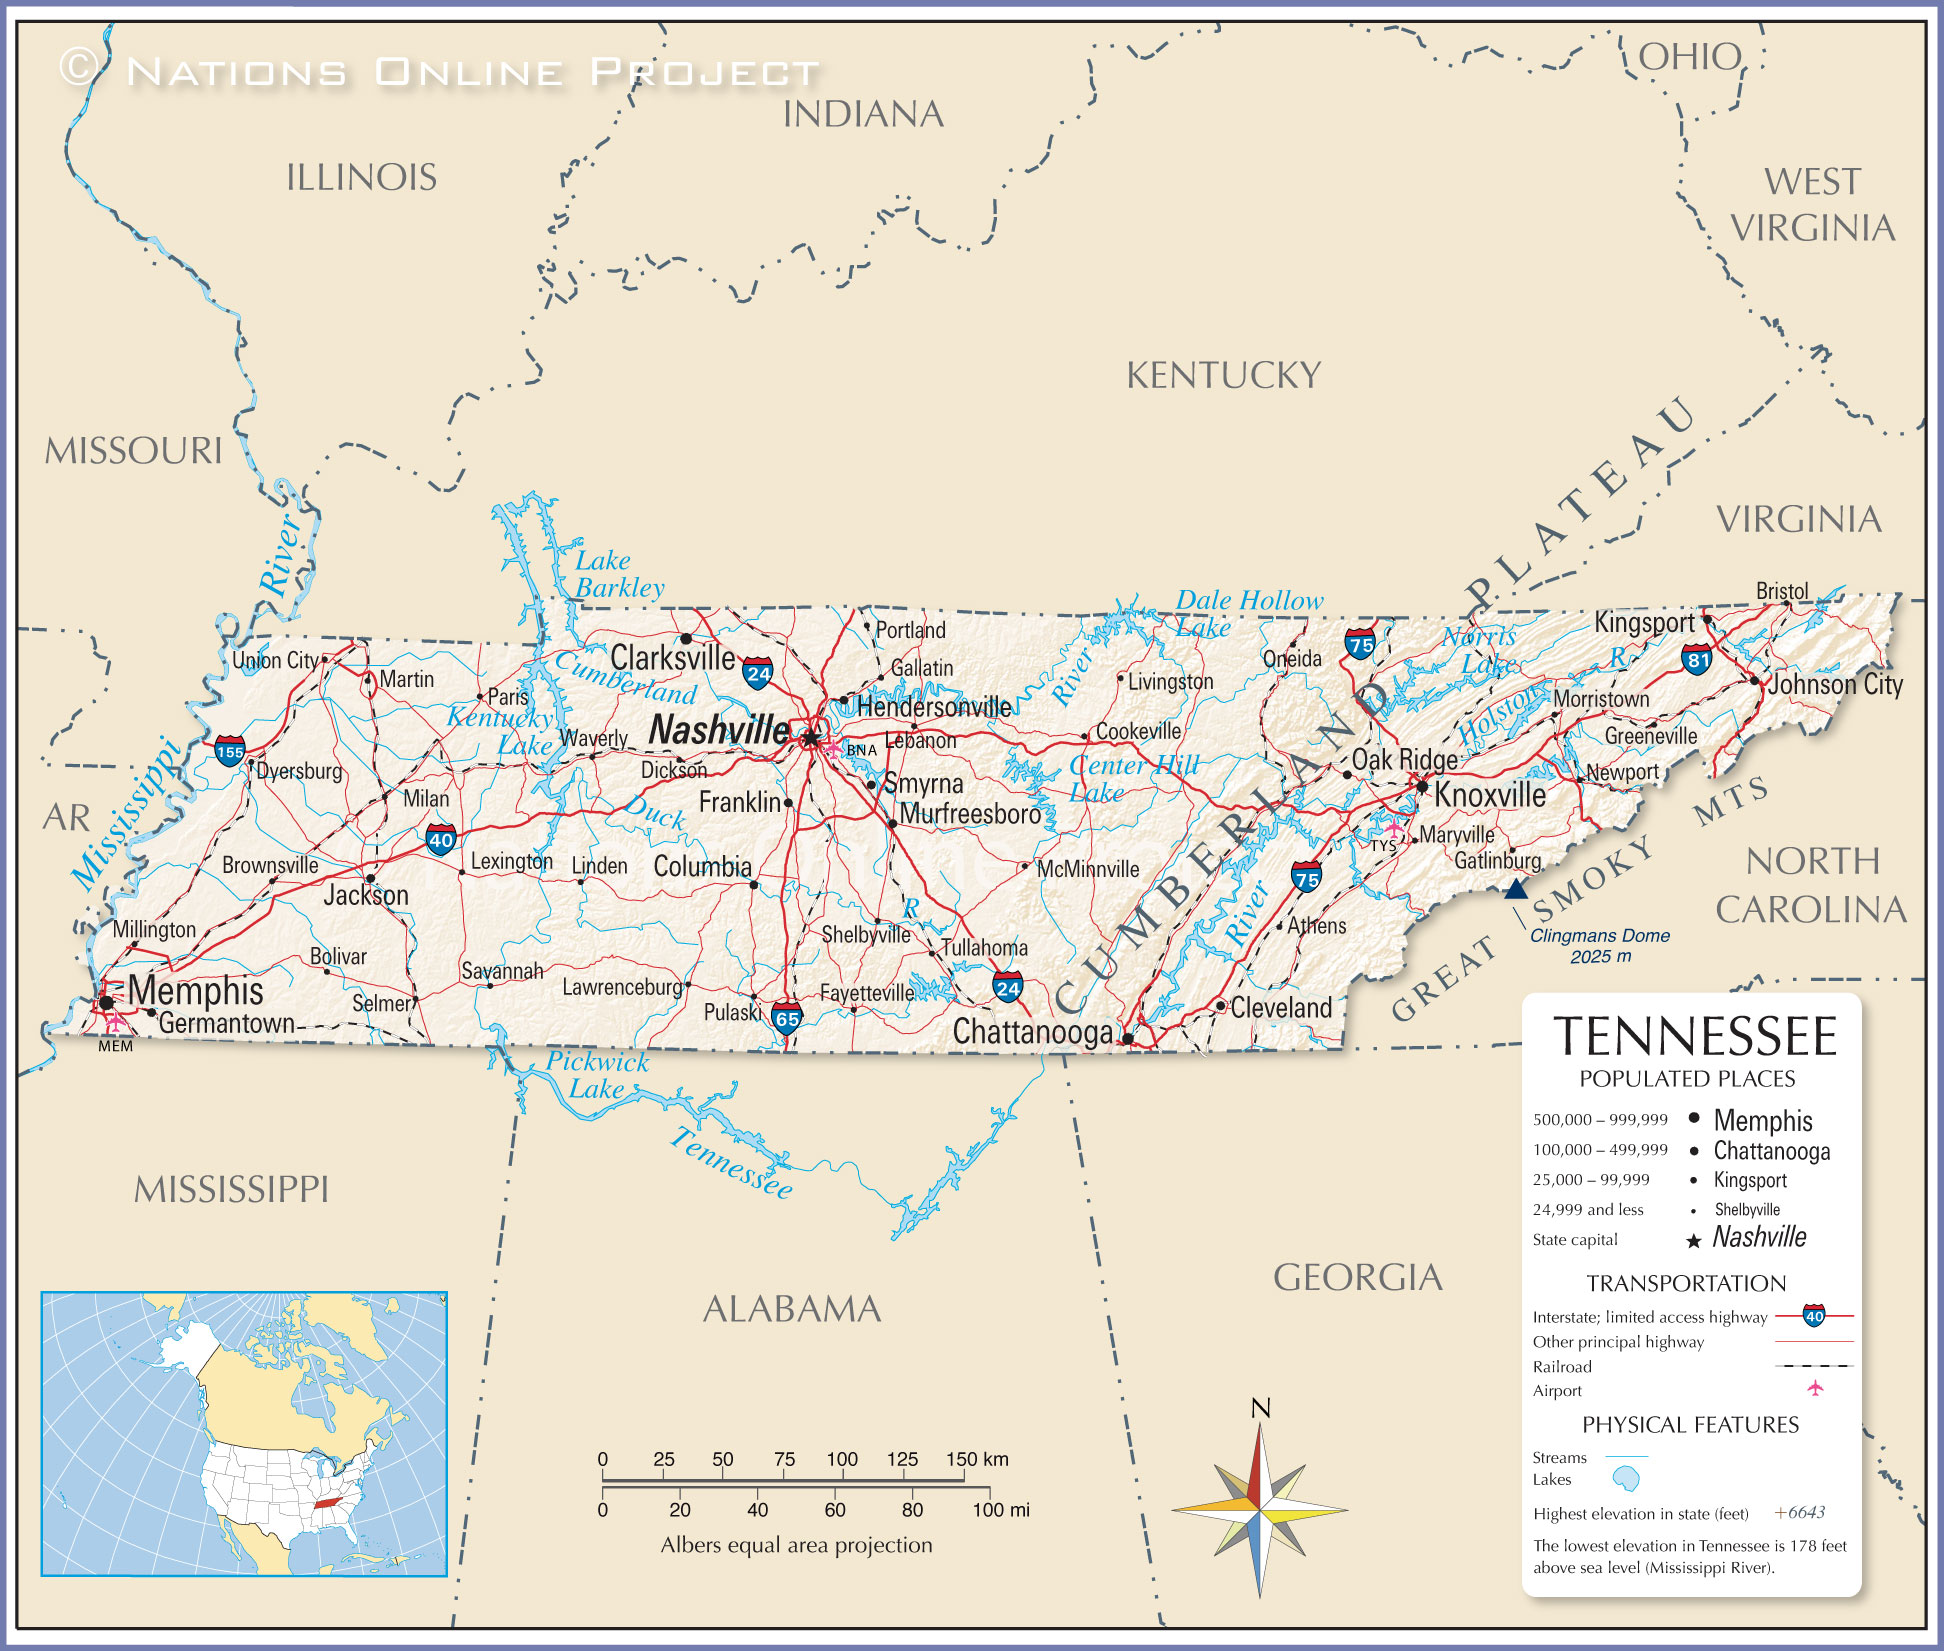 Reference Maps of Tennessee, USA - Nations Online Project on spring hill tennessee state map, knoxville tennessee hotels, knoxville florida map, knoxville tennessee state outline, florence south carolina state map, gatlinburg tennessee state map, knoxville tennessee home, knoxville tennessee state flower, anderson south carolina state map, middletown ohio state map, knoxville michigan map, kingston tennessee state map, salt lake city utah state map, atlanta georgia state map, kingsport tennessee state map, knoxville tennessee wildlife, fairfax virginia state map, madison tennessee state map, old tennessee state map, dyersburg tennessee state map,